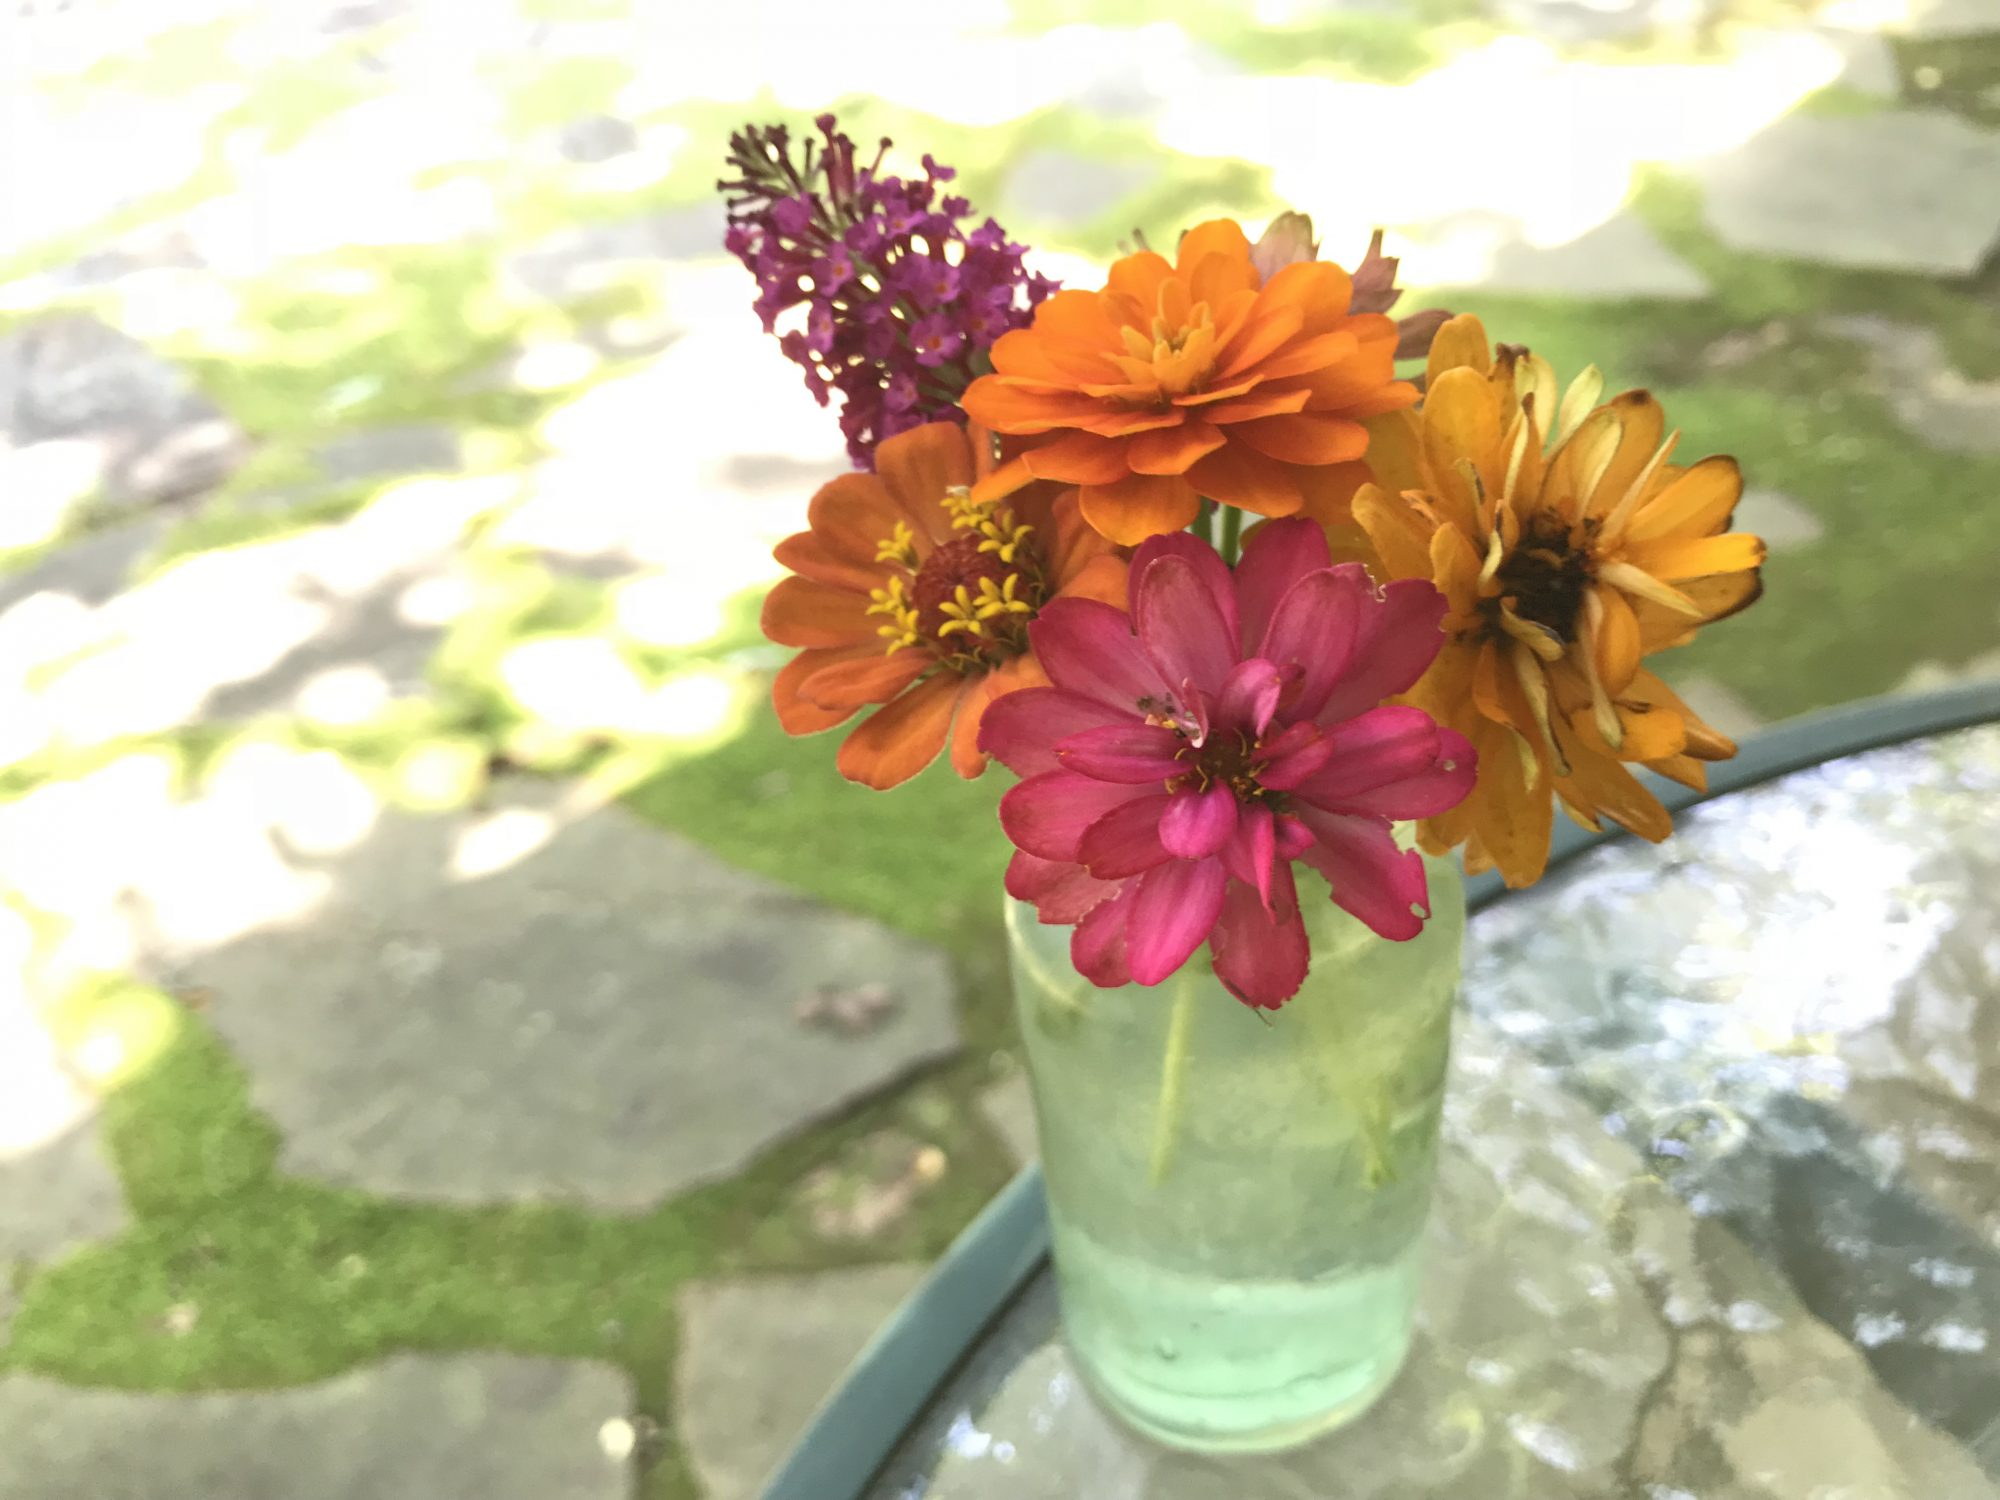 In a Vase on Monday: Zinnias and Buddleja